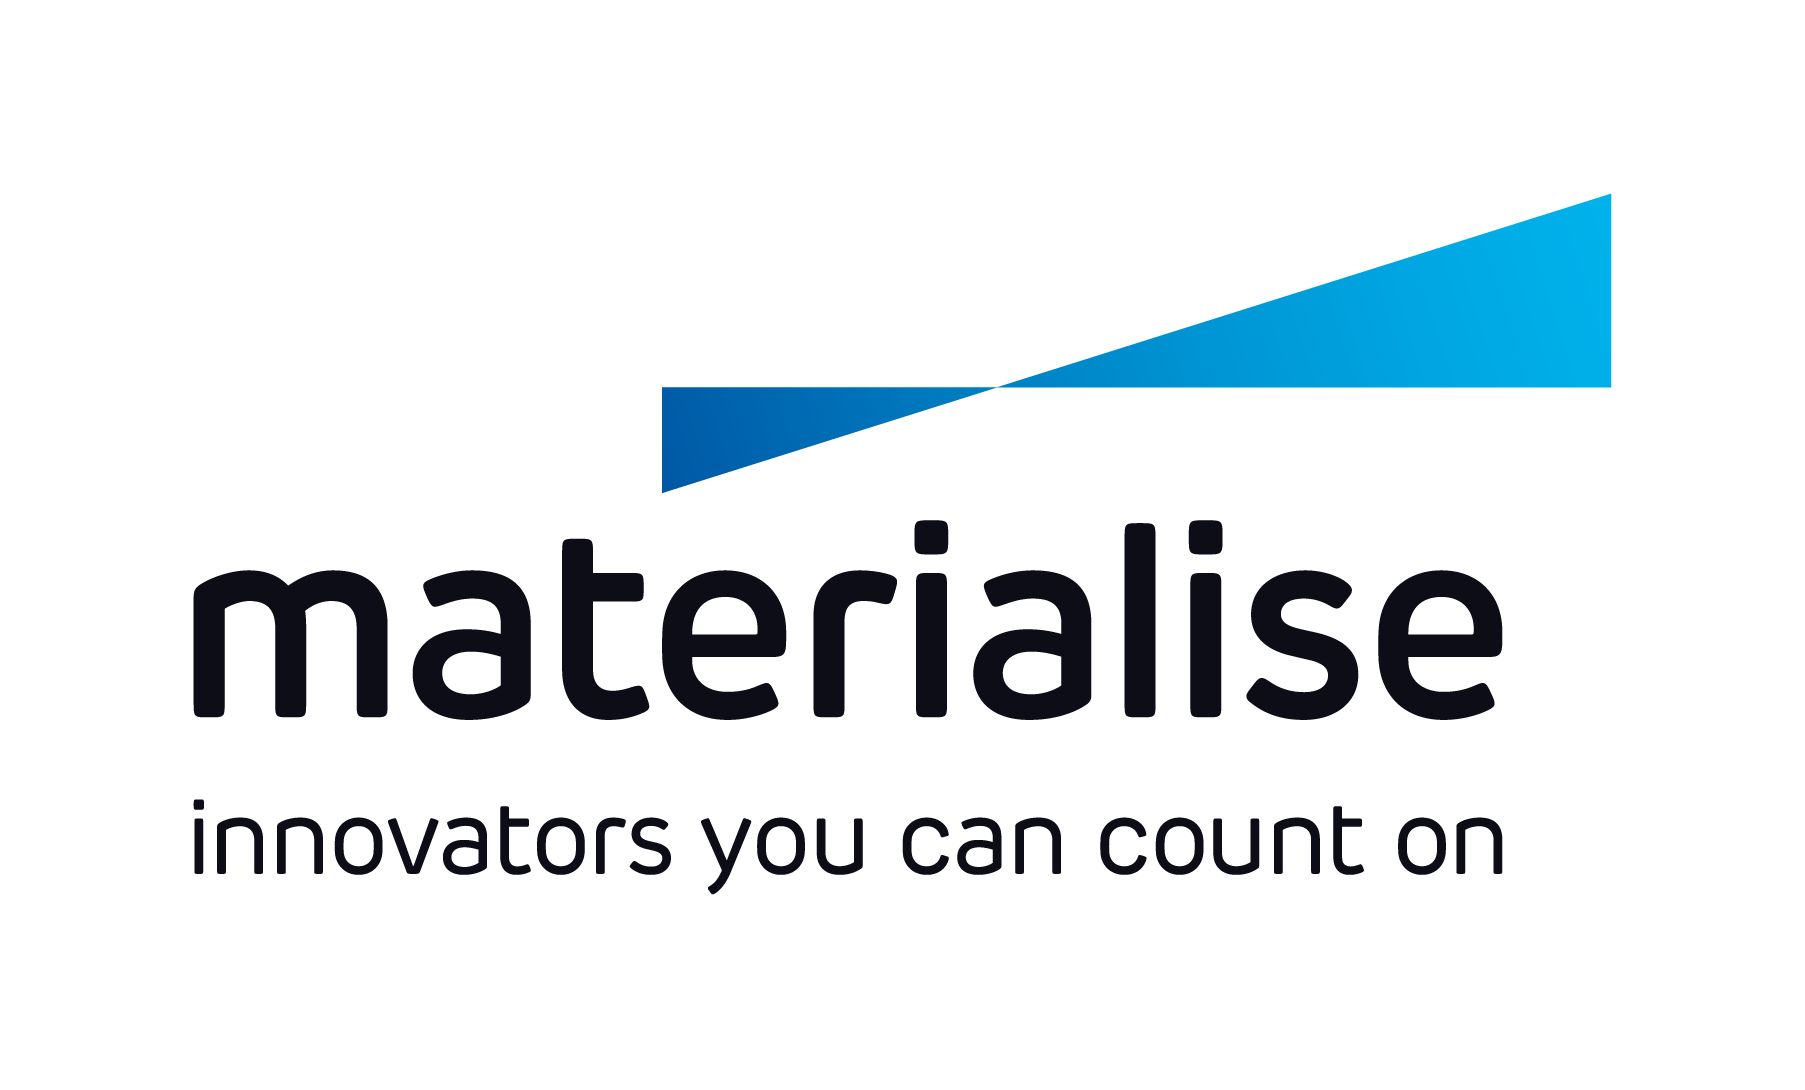 Materialise's 2016 Financial Results Look Positive